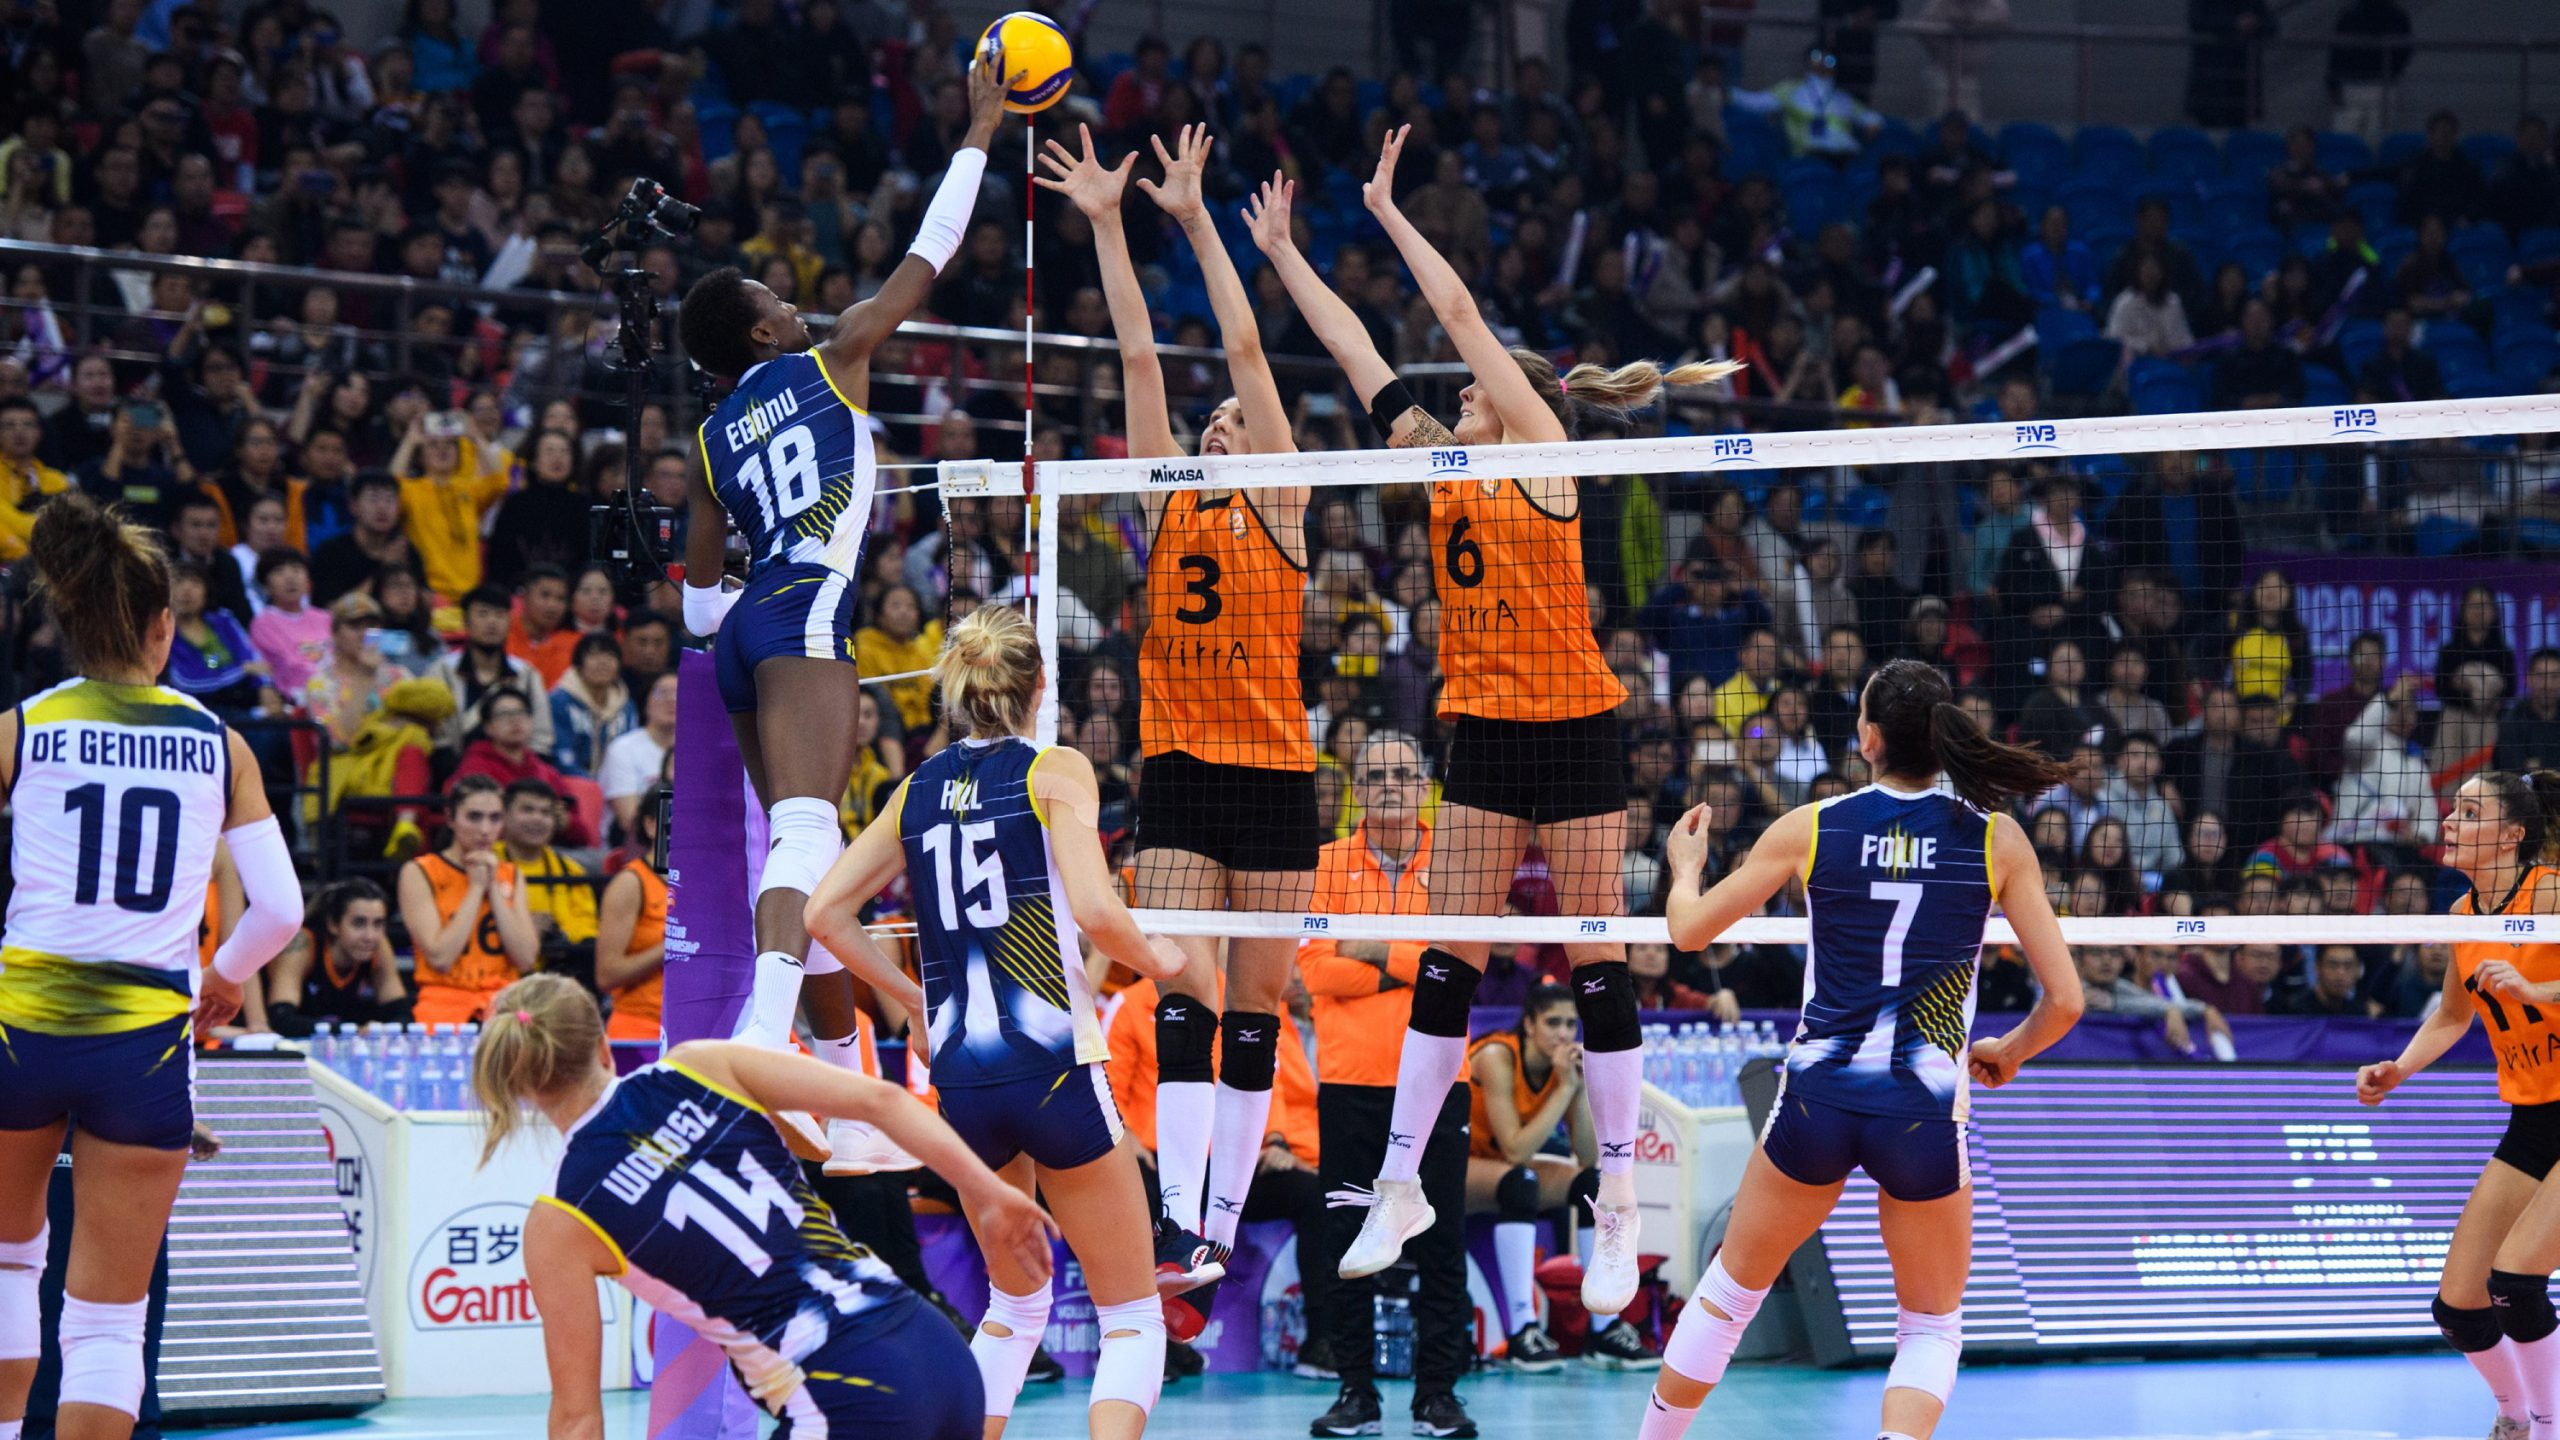 VOLLEYBALL WORLD ANNOUNCES HOSTS OF THE 2021 AND 2022 FIVB VOLLEYBALL CLUB WORLD CHAMPIONSHIPS